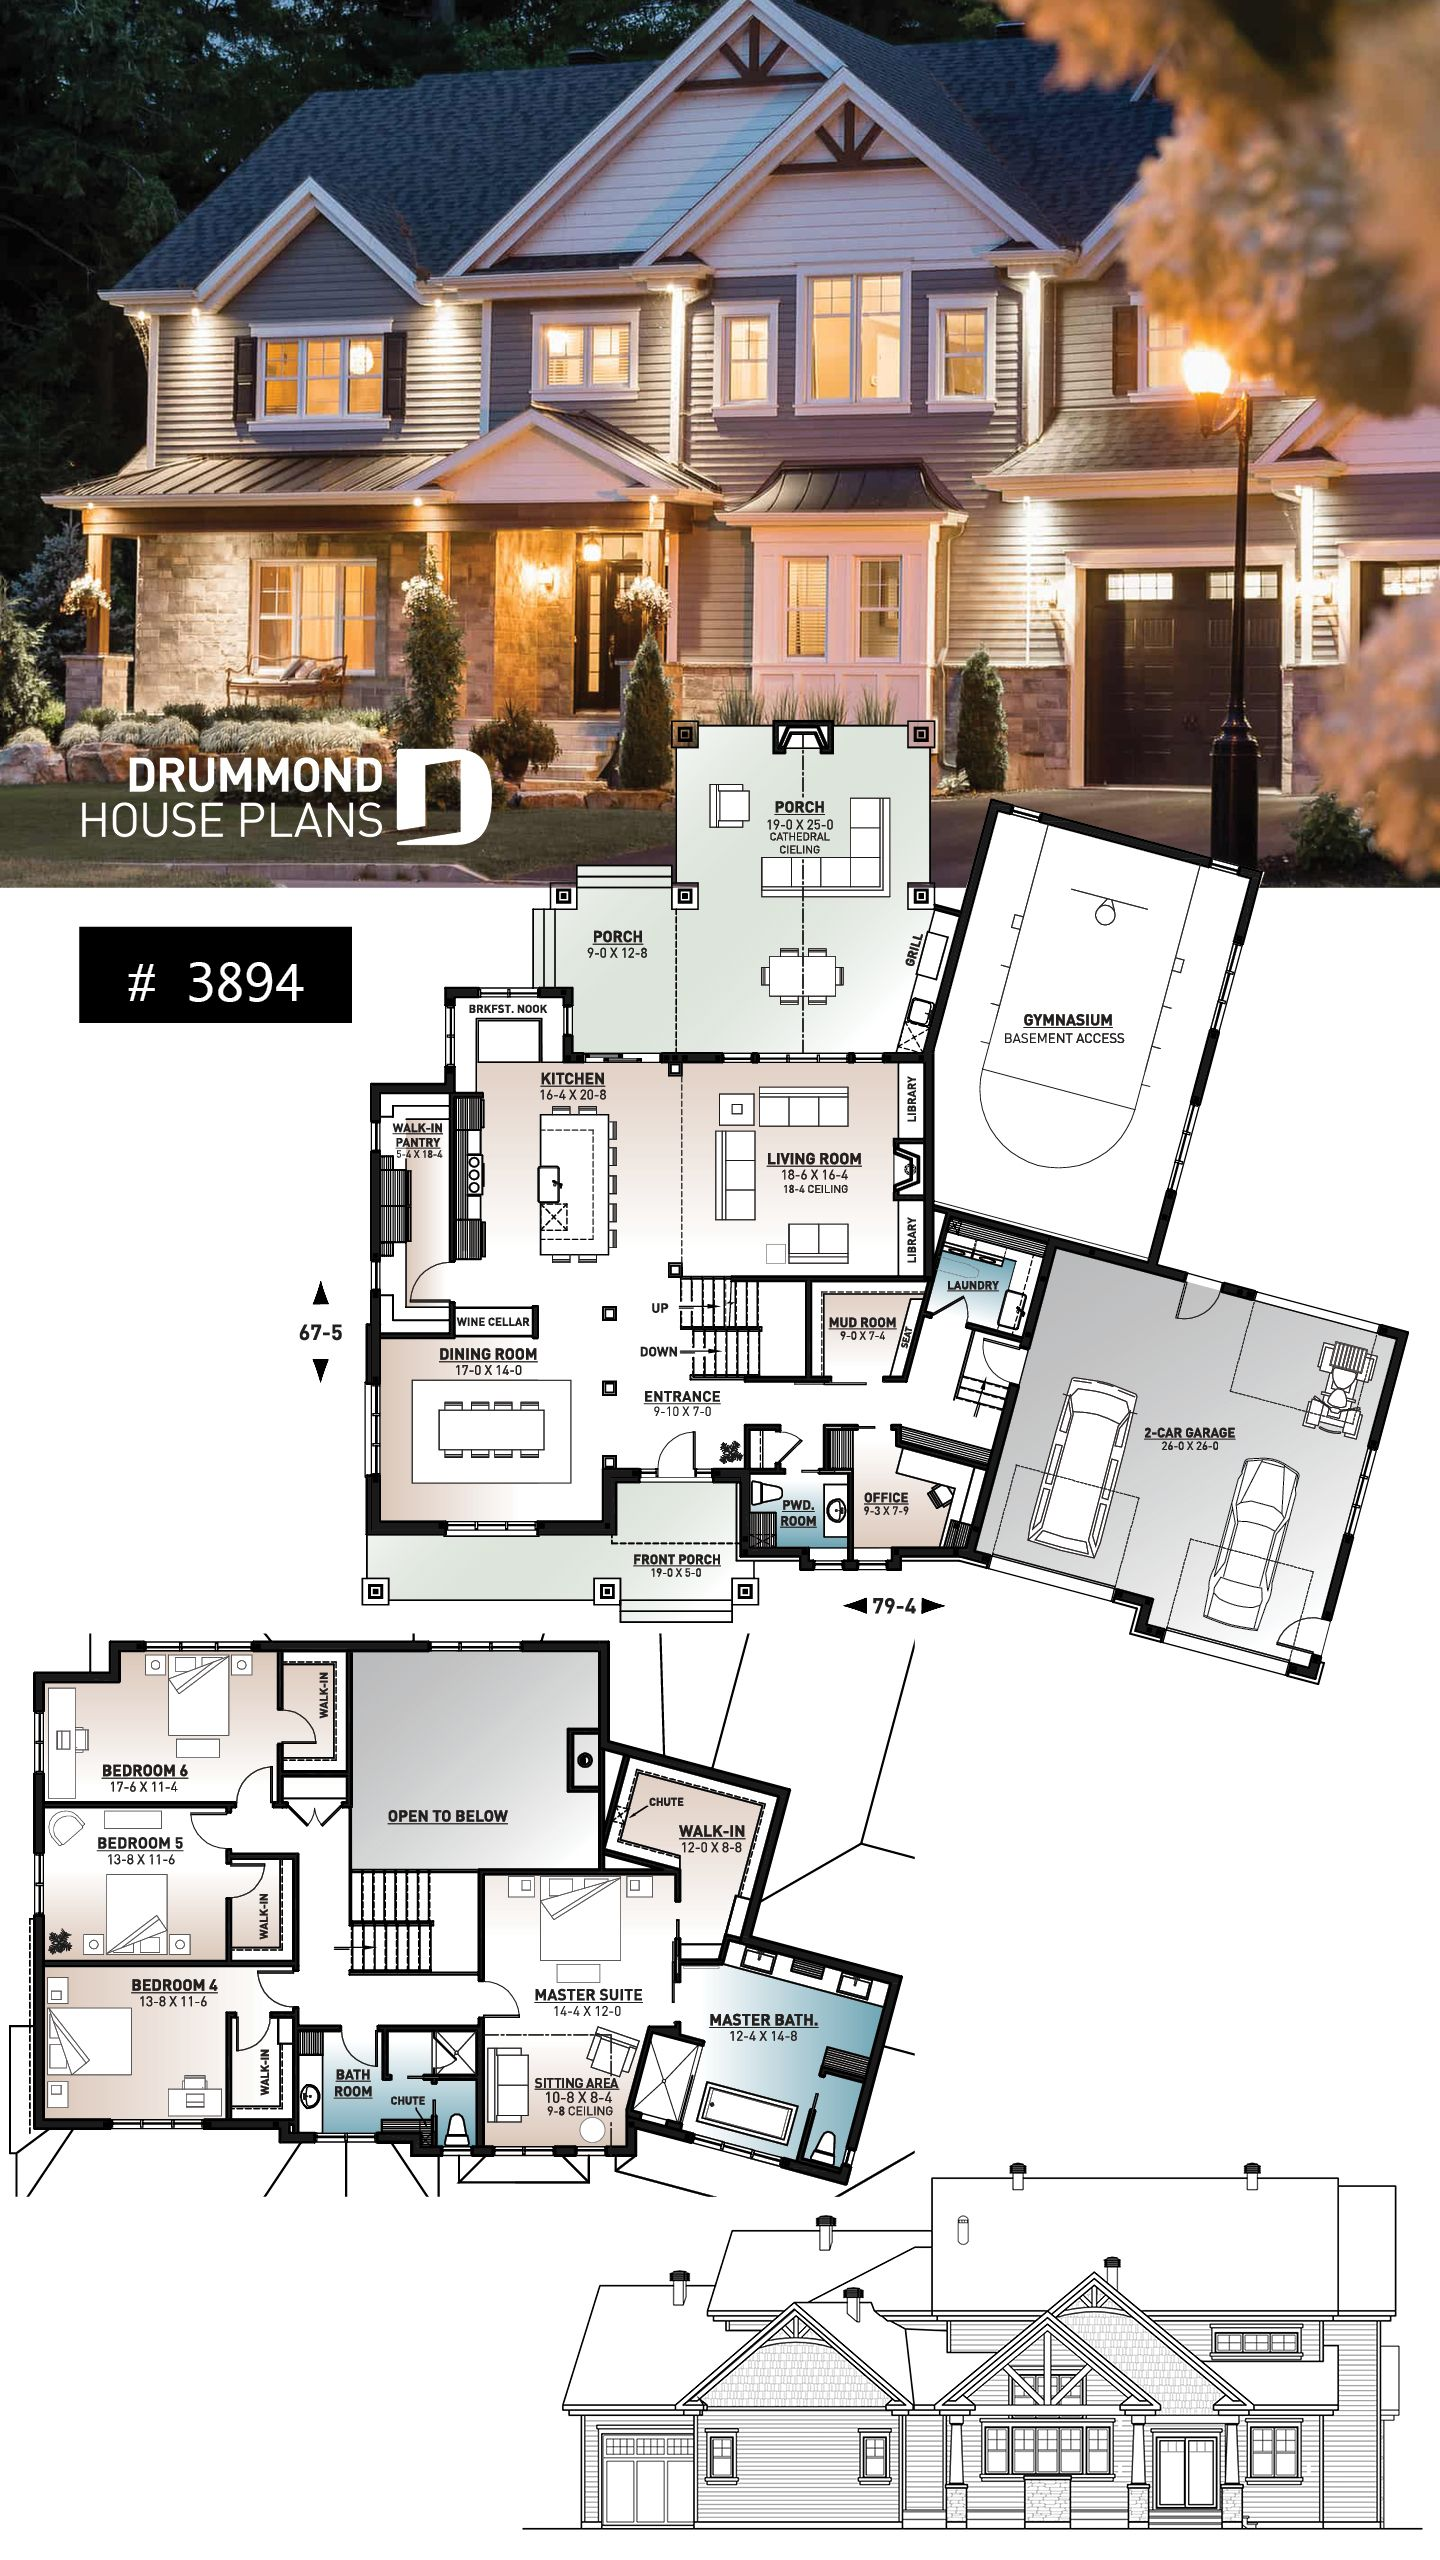 10+ Drummond home plans image ideas